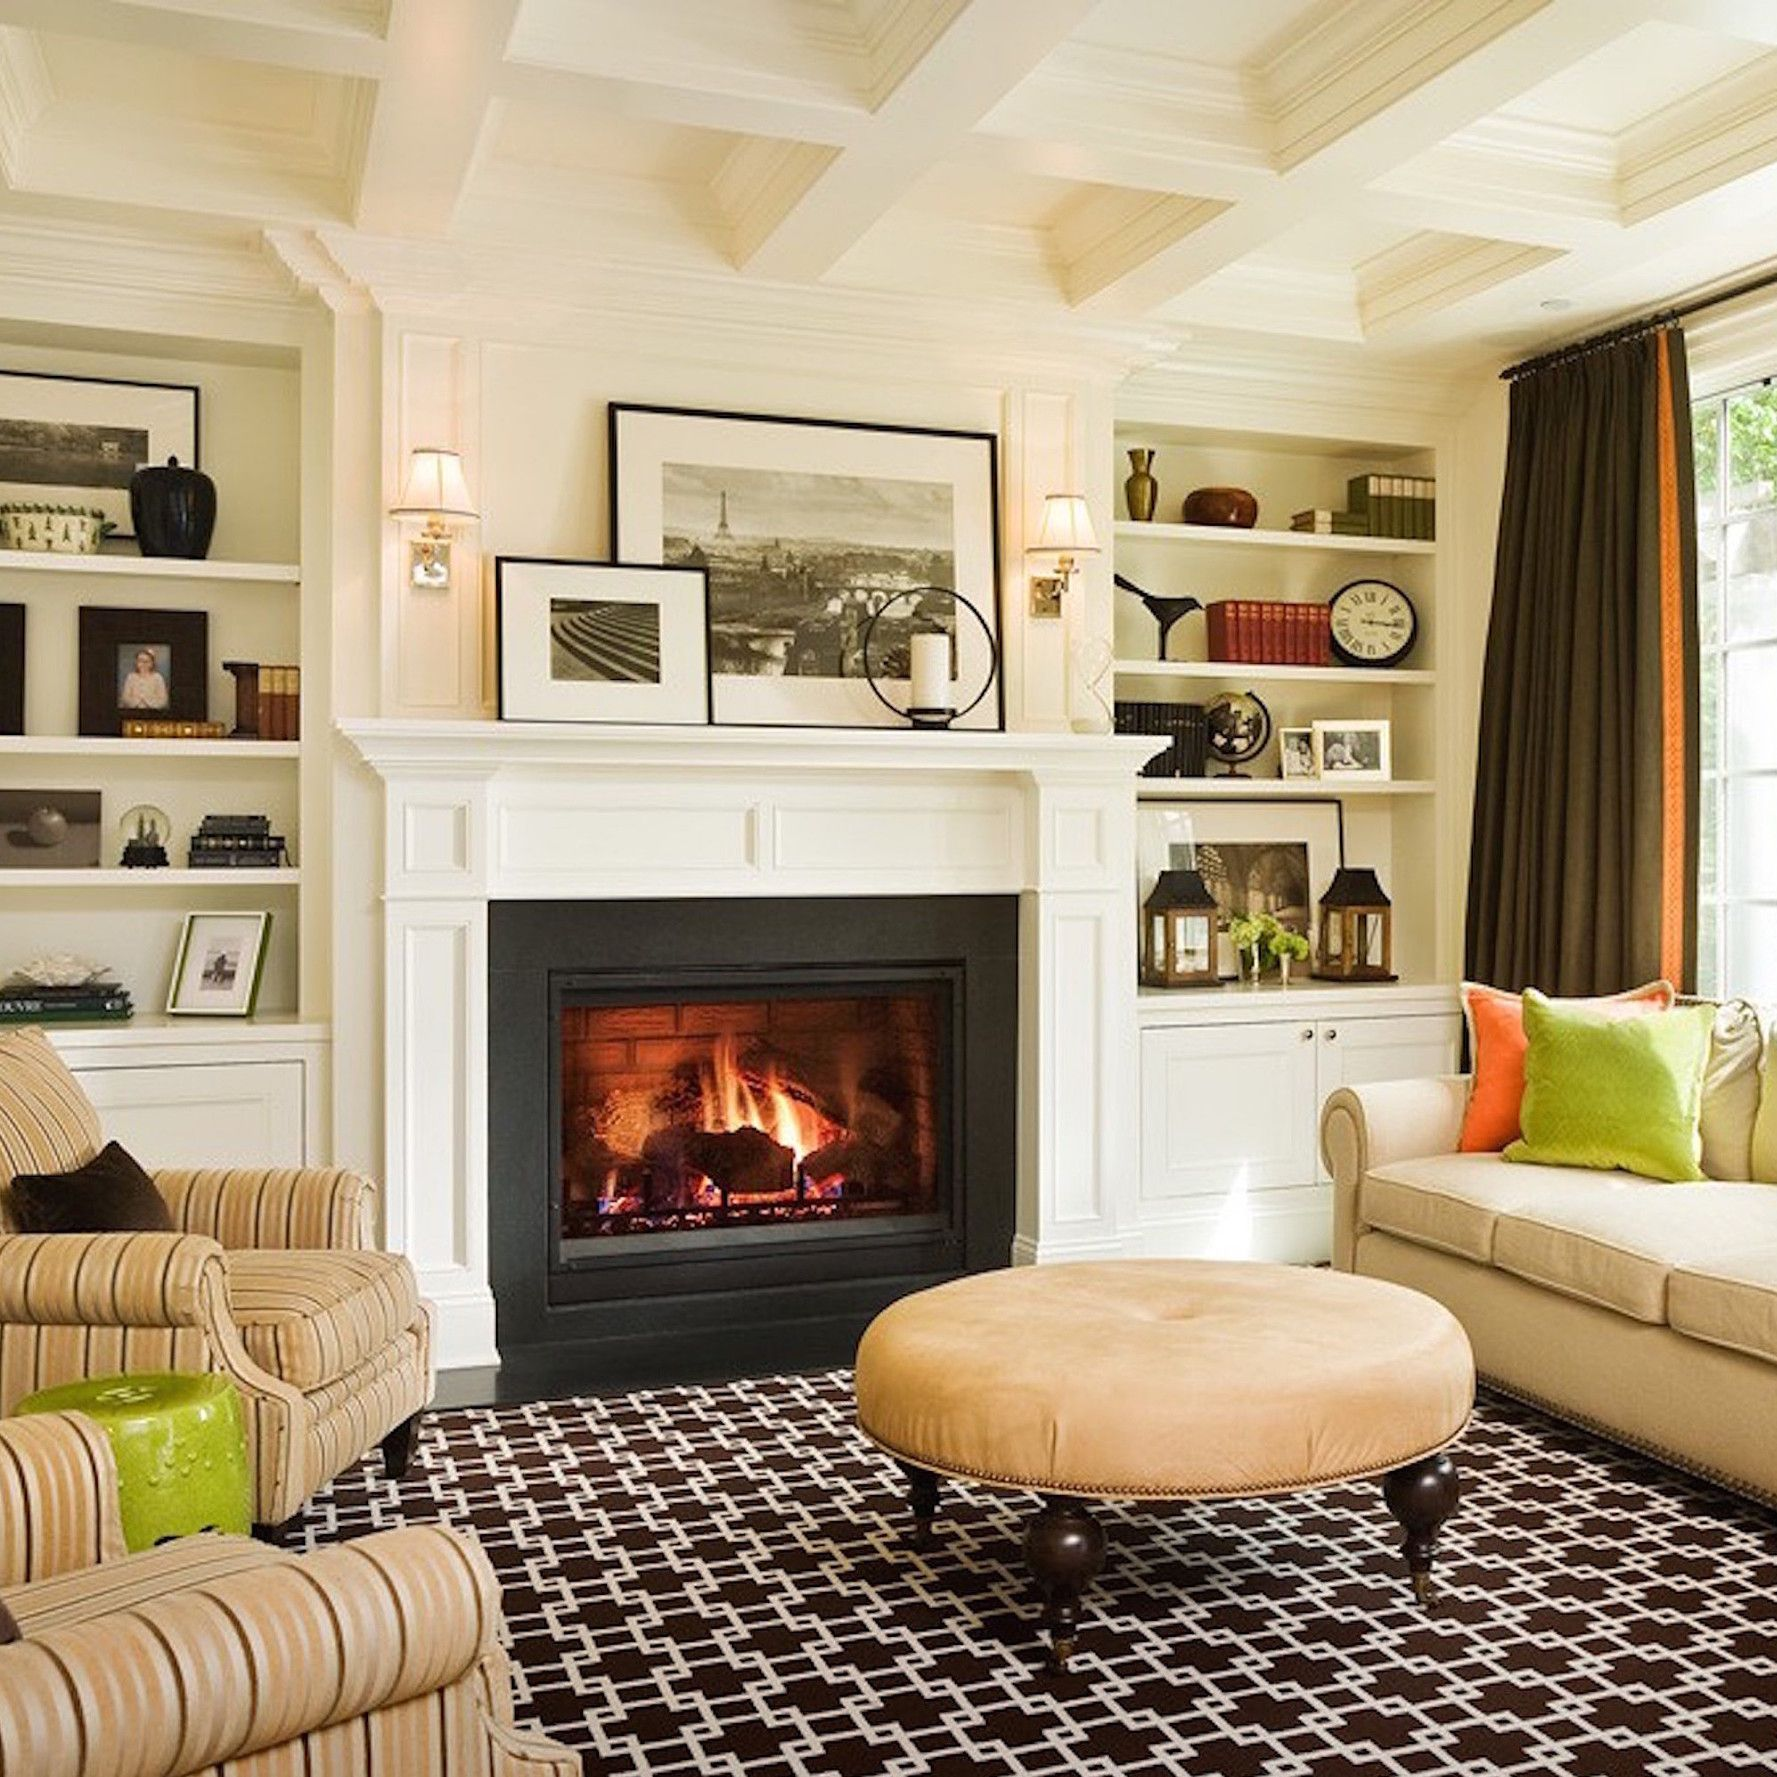 10 Rules To Keep In Mind When Decorating A Living Room Living Room Mantel Decorating Ideas Living Room Orange Living Room Mantel